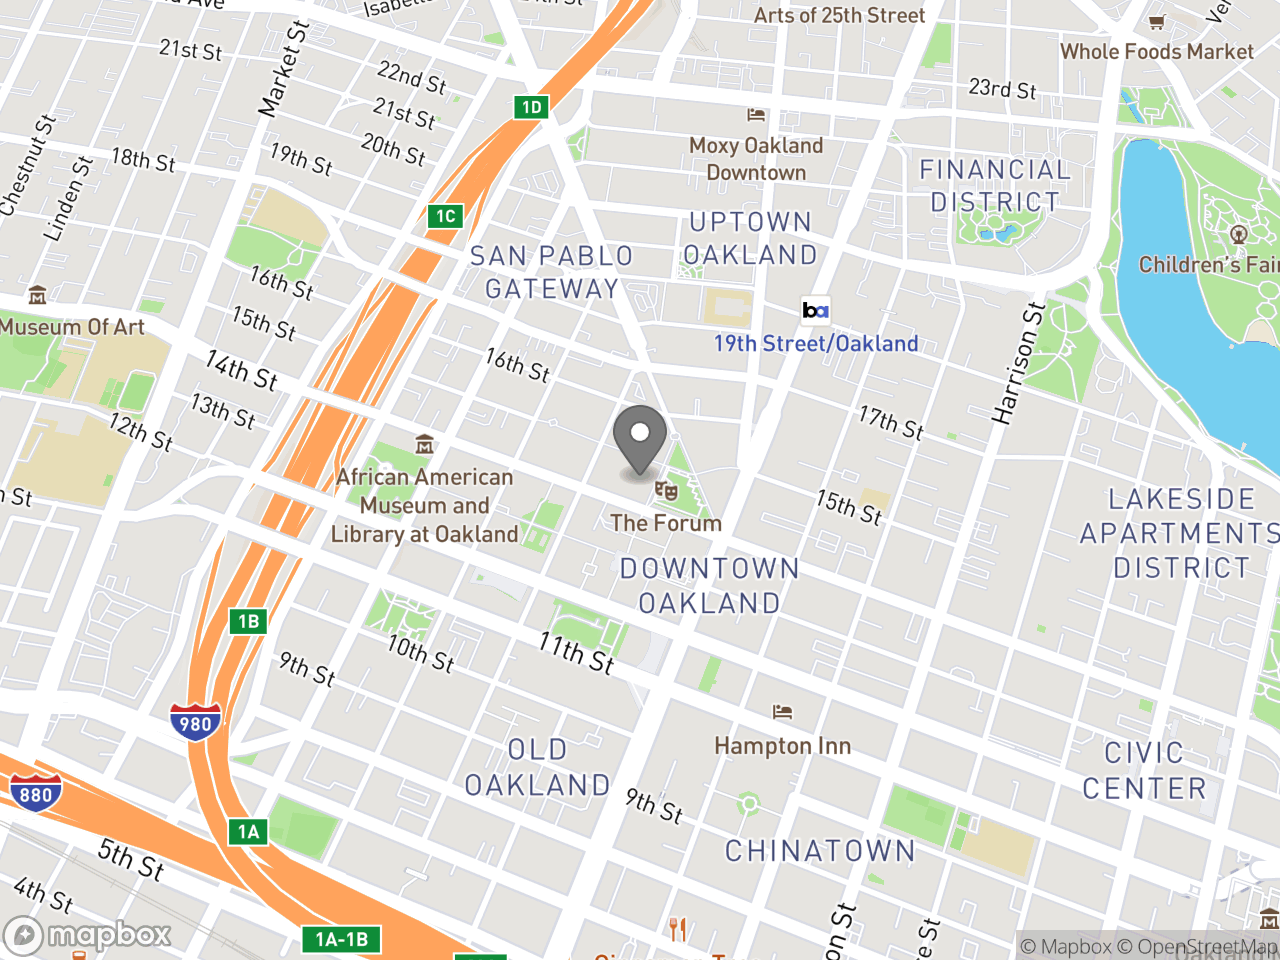 Map location for 11-4-19 PAAC Meeting, located at 1 Frank H. Ogawa Plaza in Oakland, CA 94612